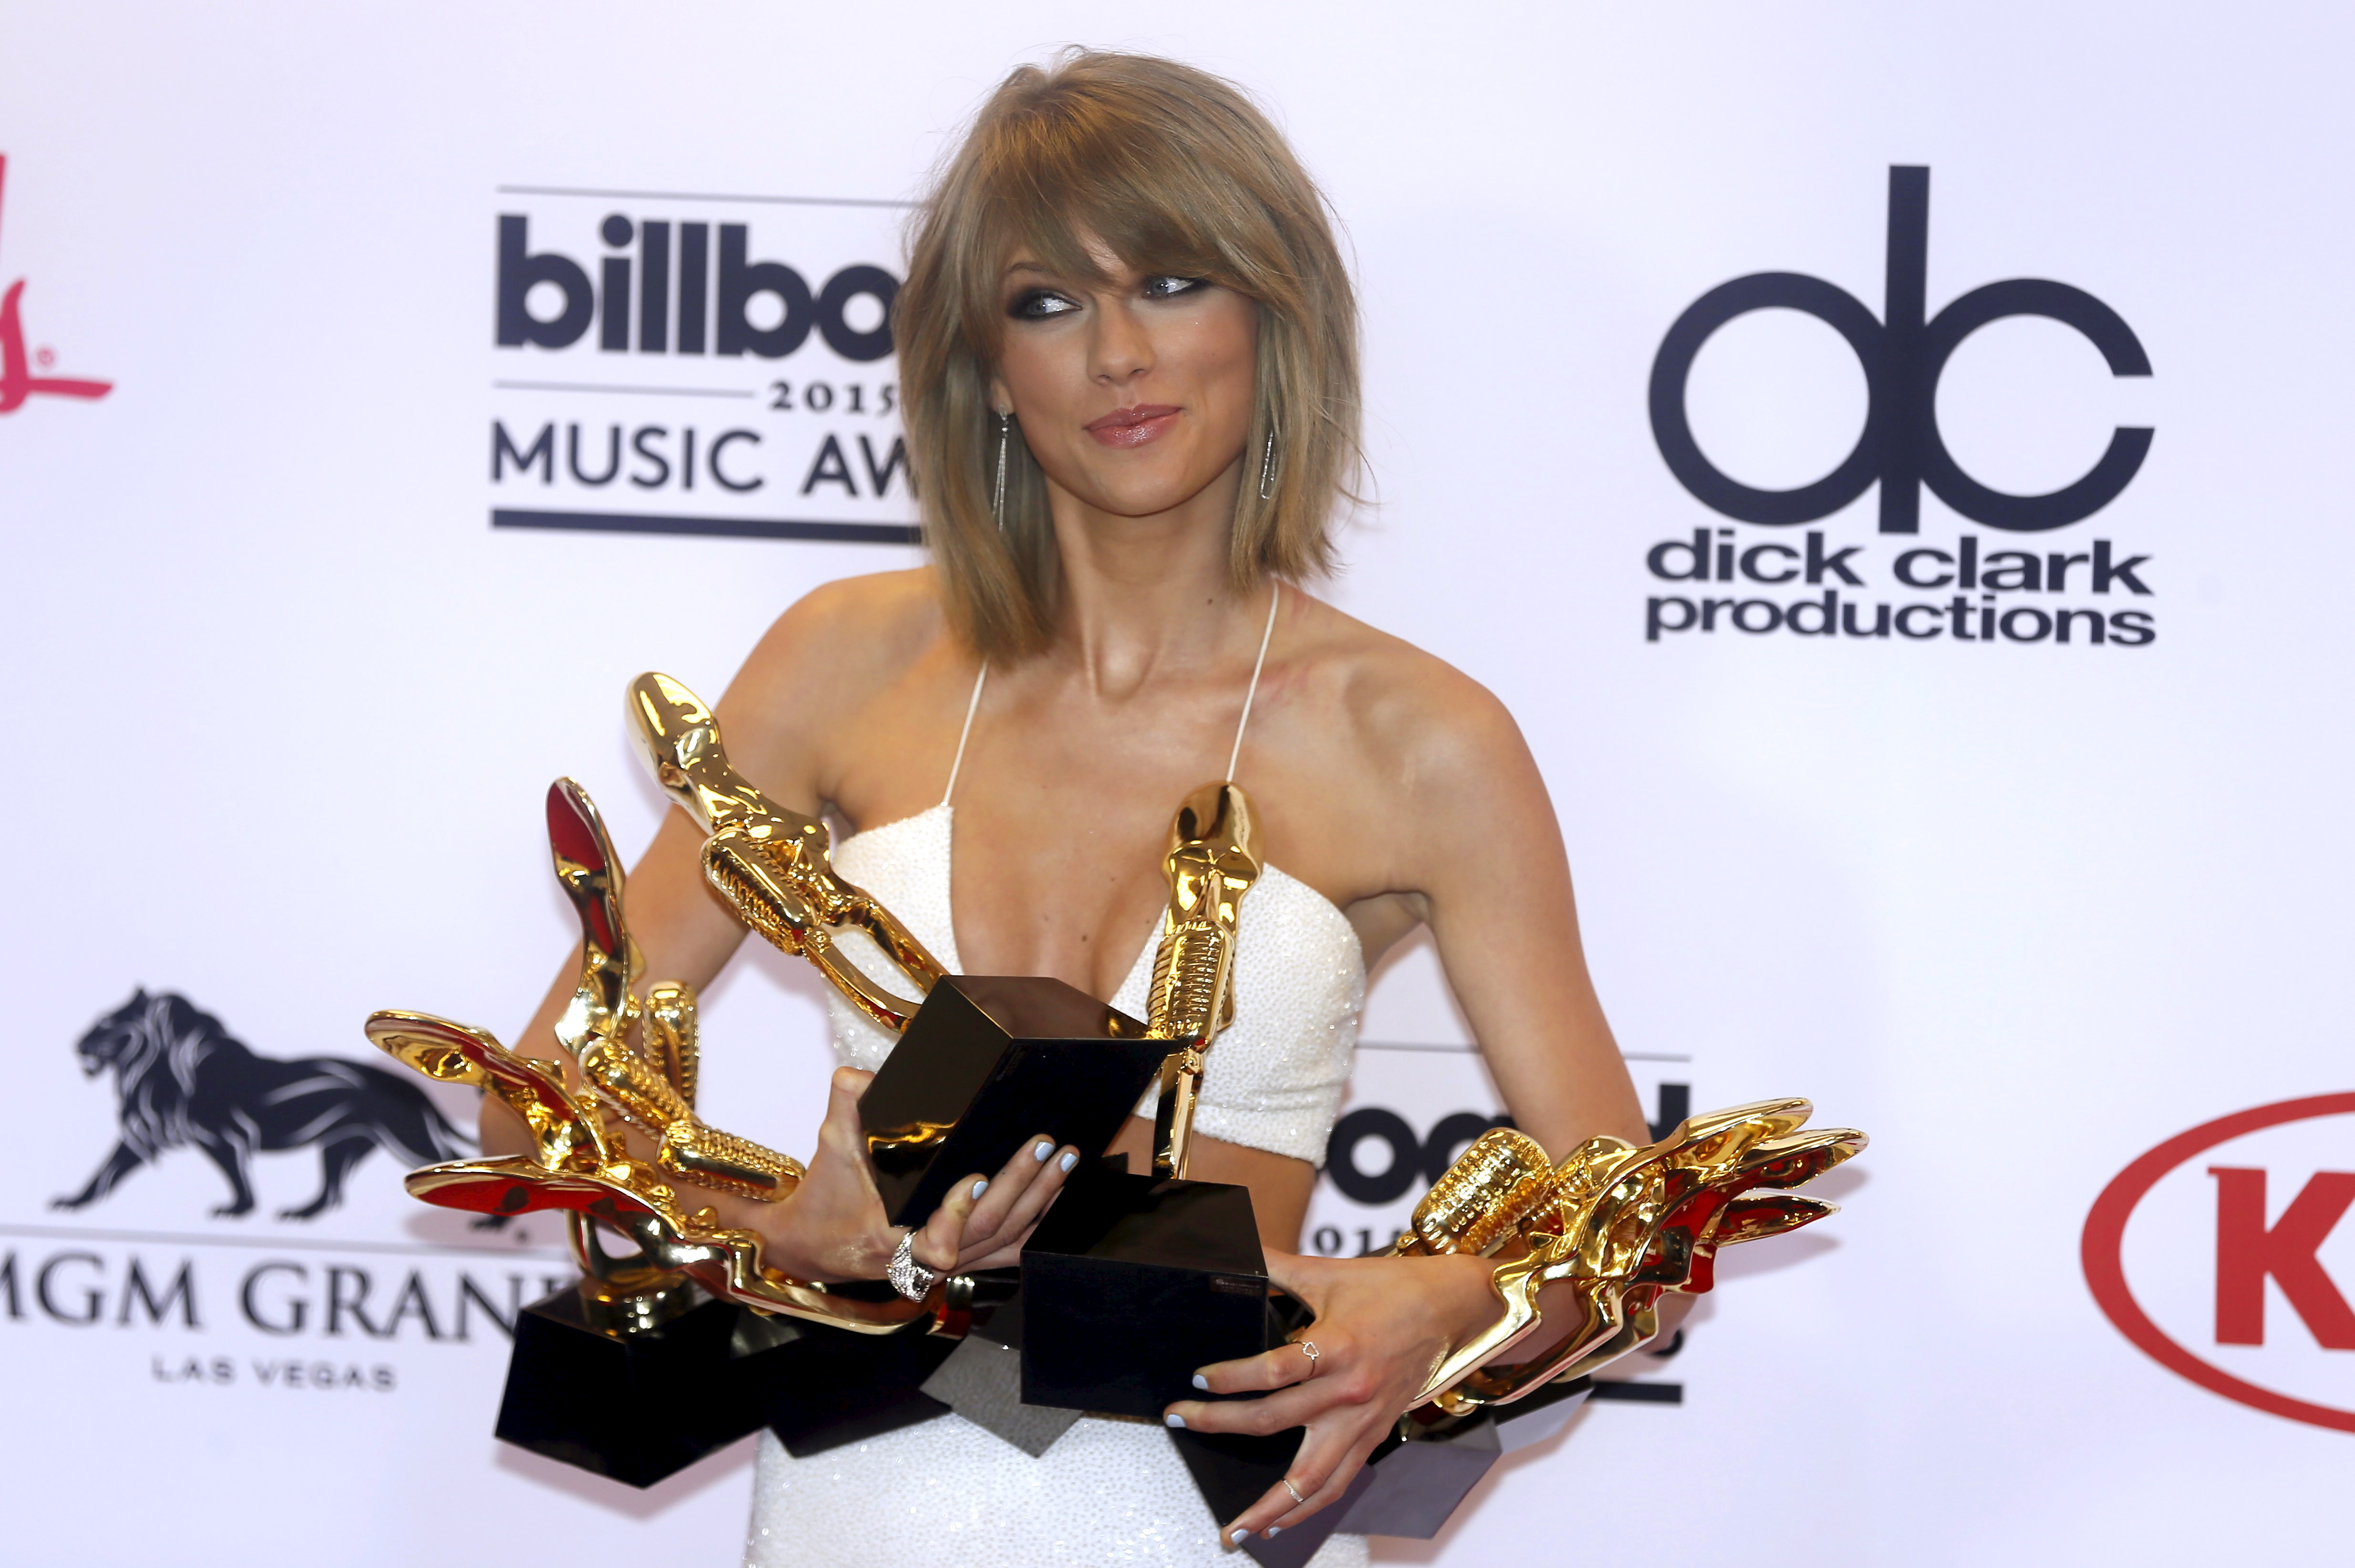 Singer Taylor Swift poses backstage at the 2015 Billboard Music Awards in Las Vegas, Nev., May 17, 2015